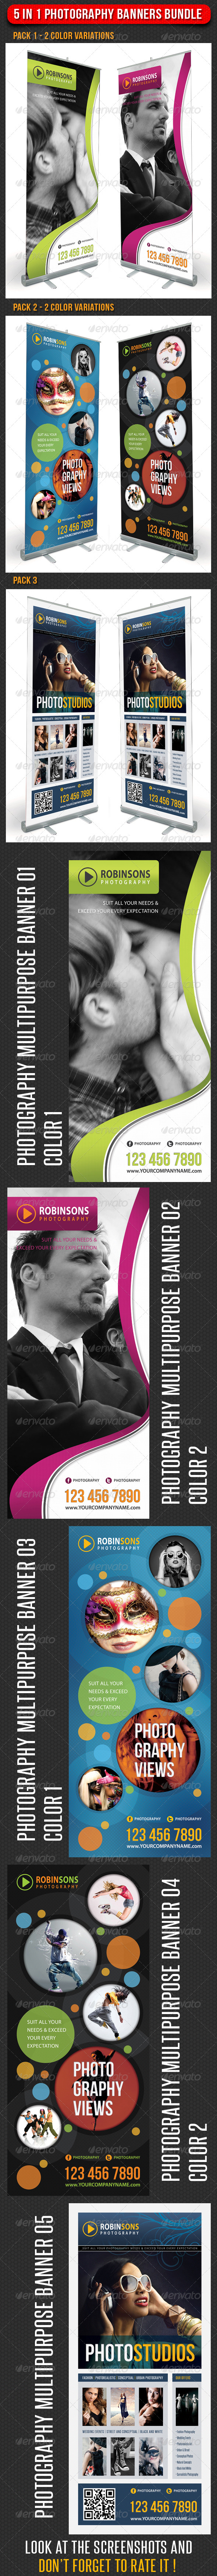 GraphicRiver 5 in 1 Photography Multipurpose Banner Bundle 02 6755119